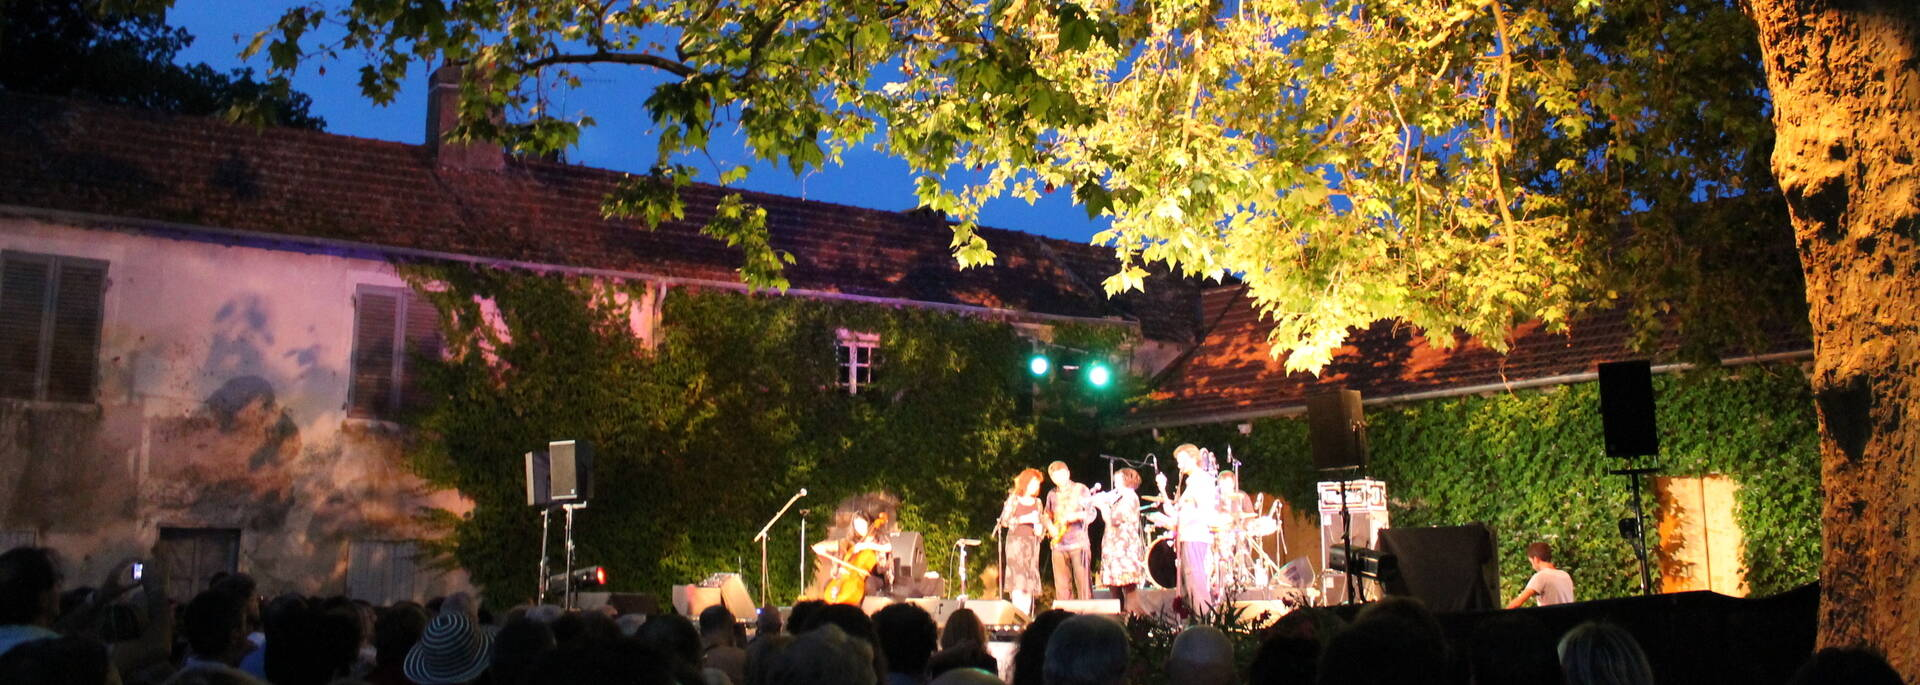 Musicaves Givry